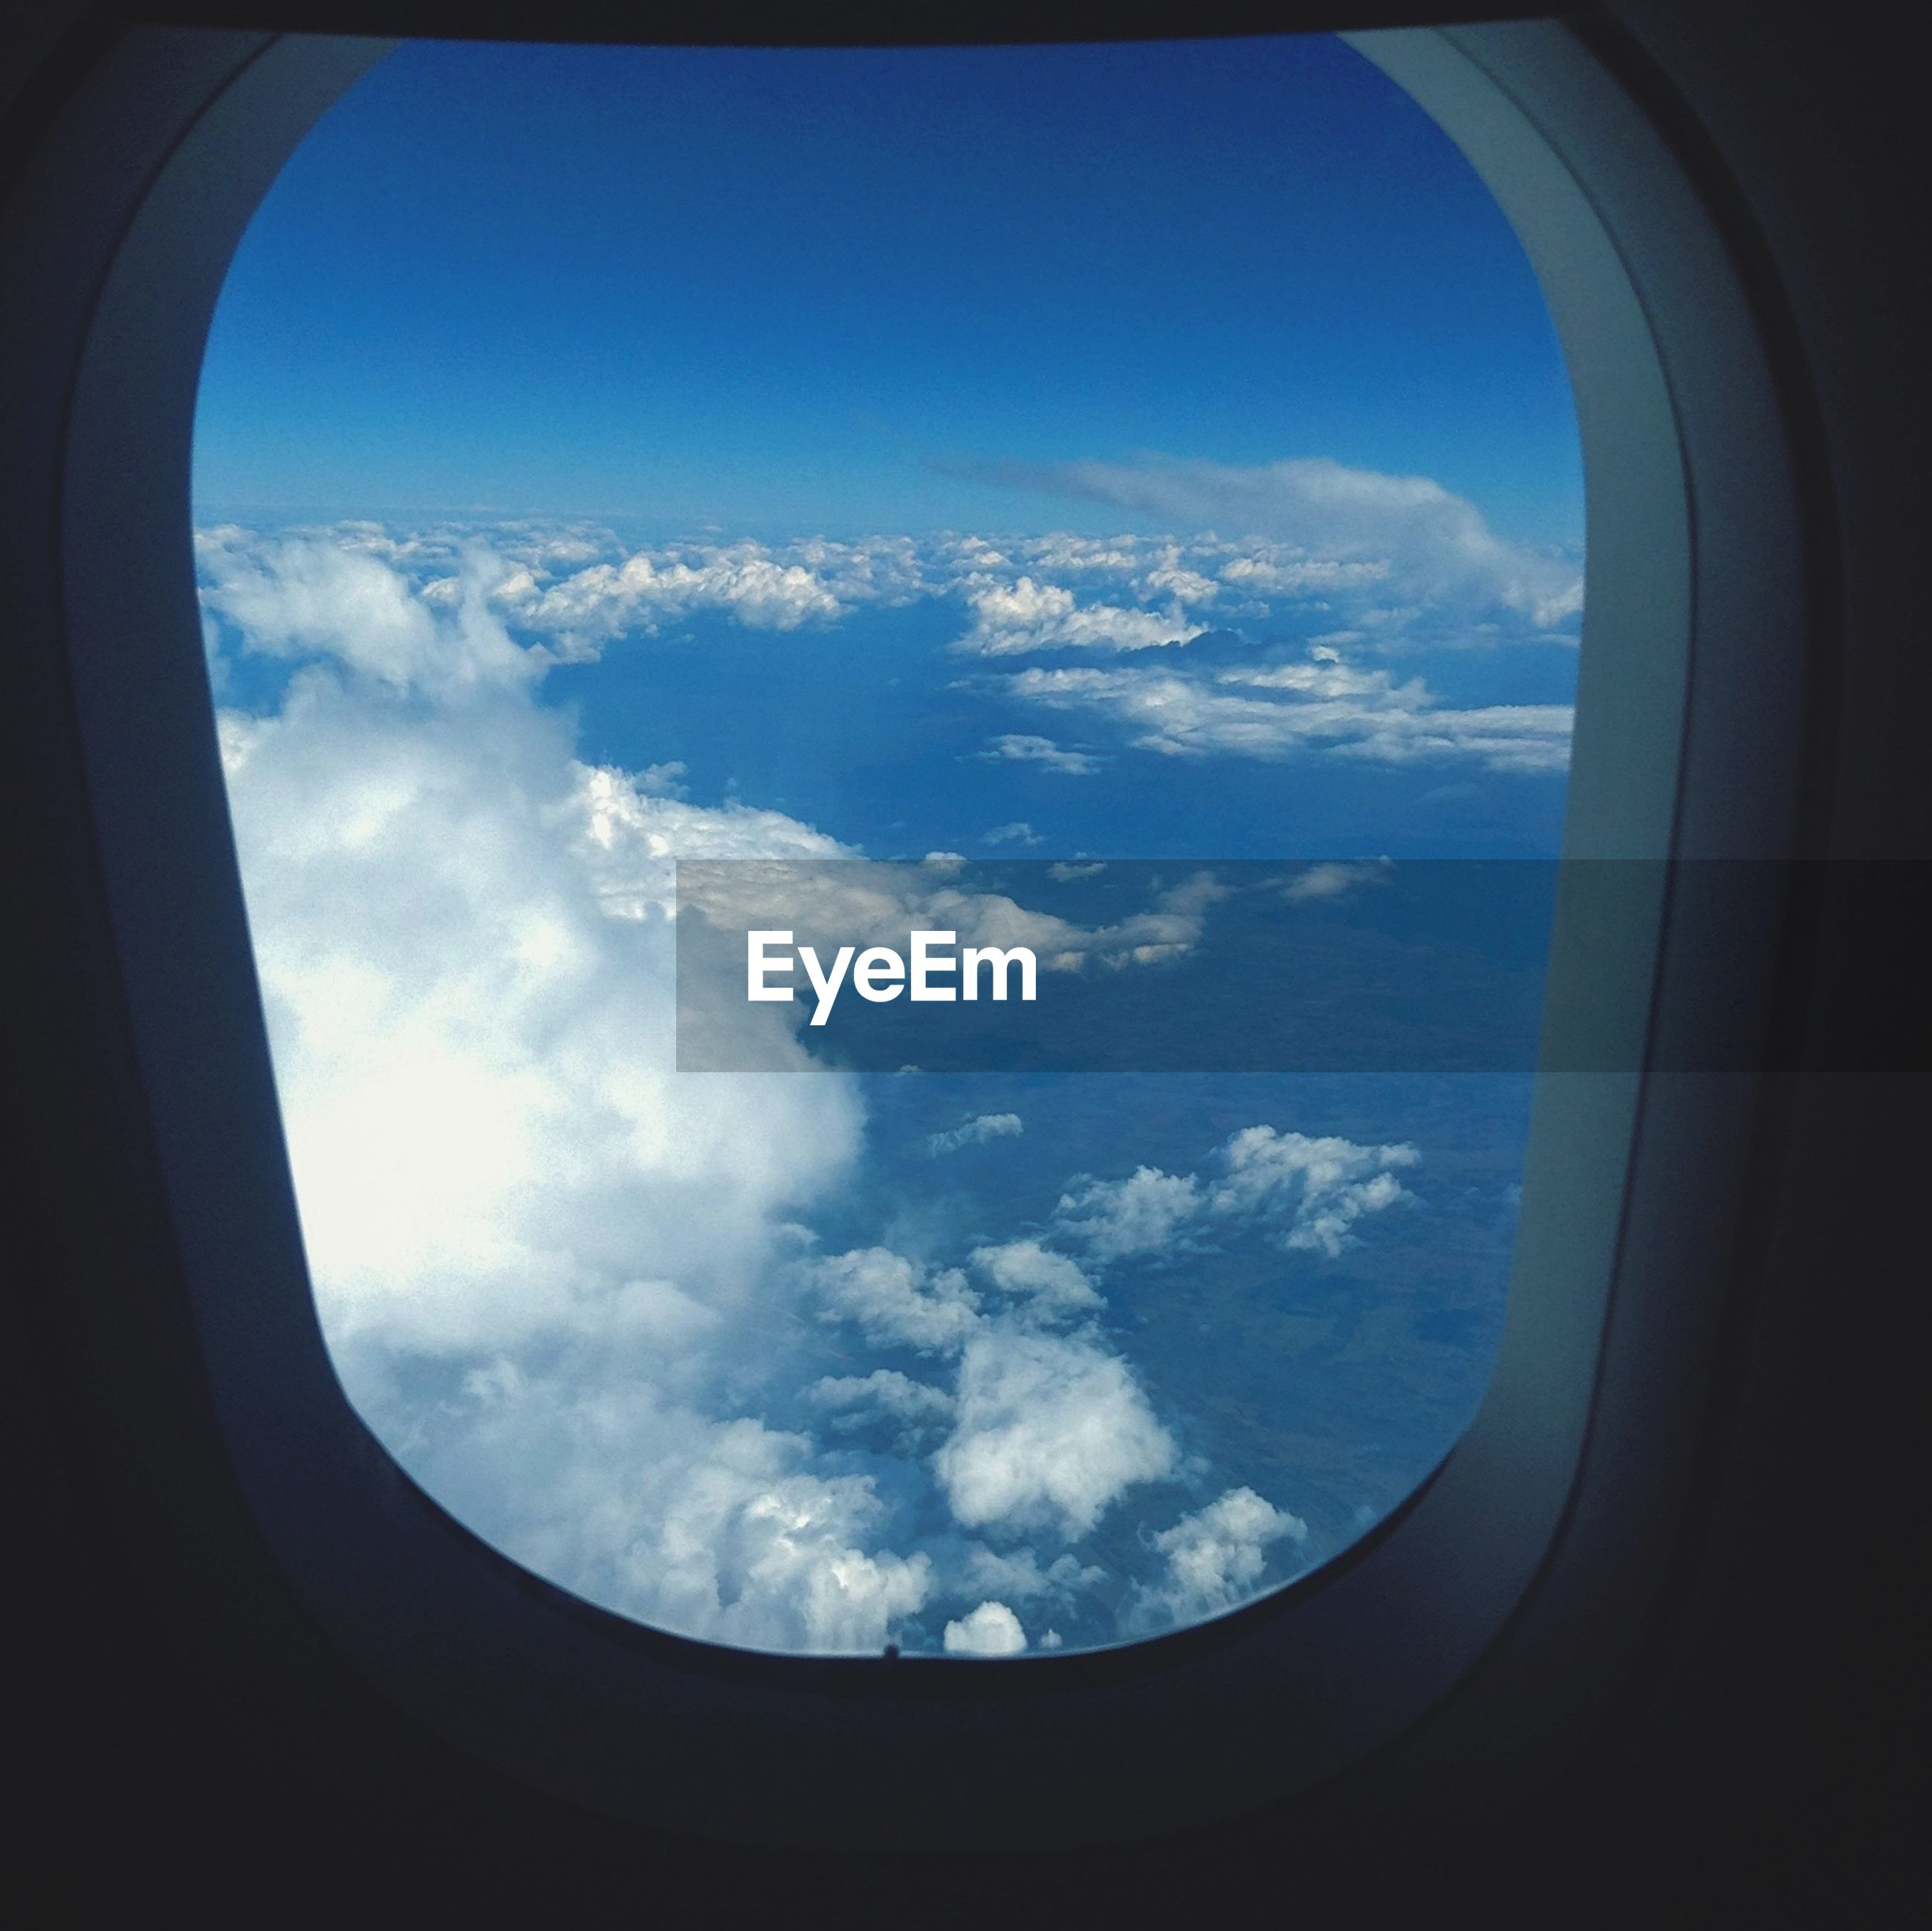 window, airplane, vehicle interior, sky, transportation, air vehicle, transparent, glass - material, mode of transport, indoors, cloud - sky, cloud, looking through window, flying, part of, cloudscape, scenics, journey, blue, travel